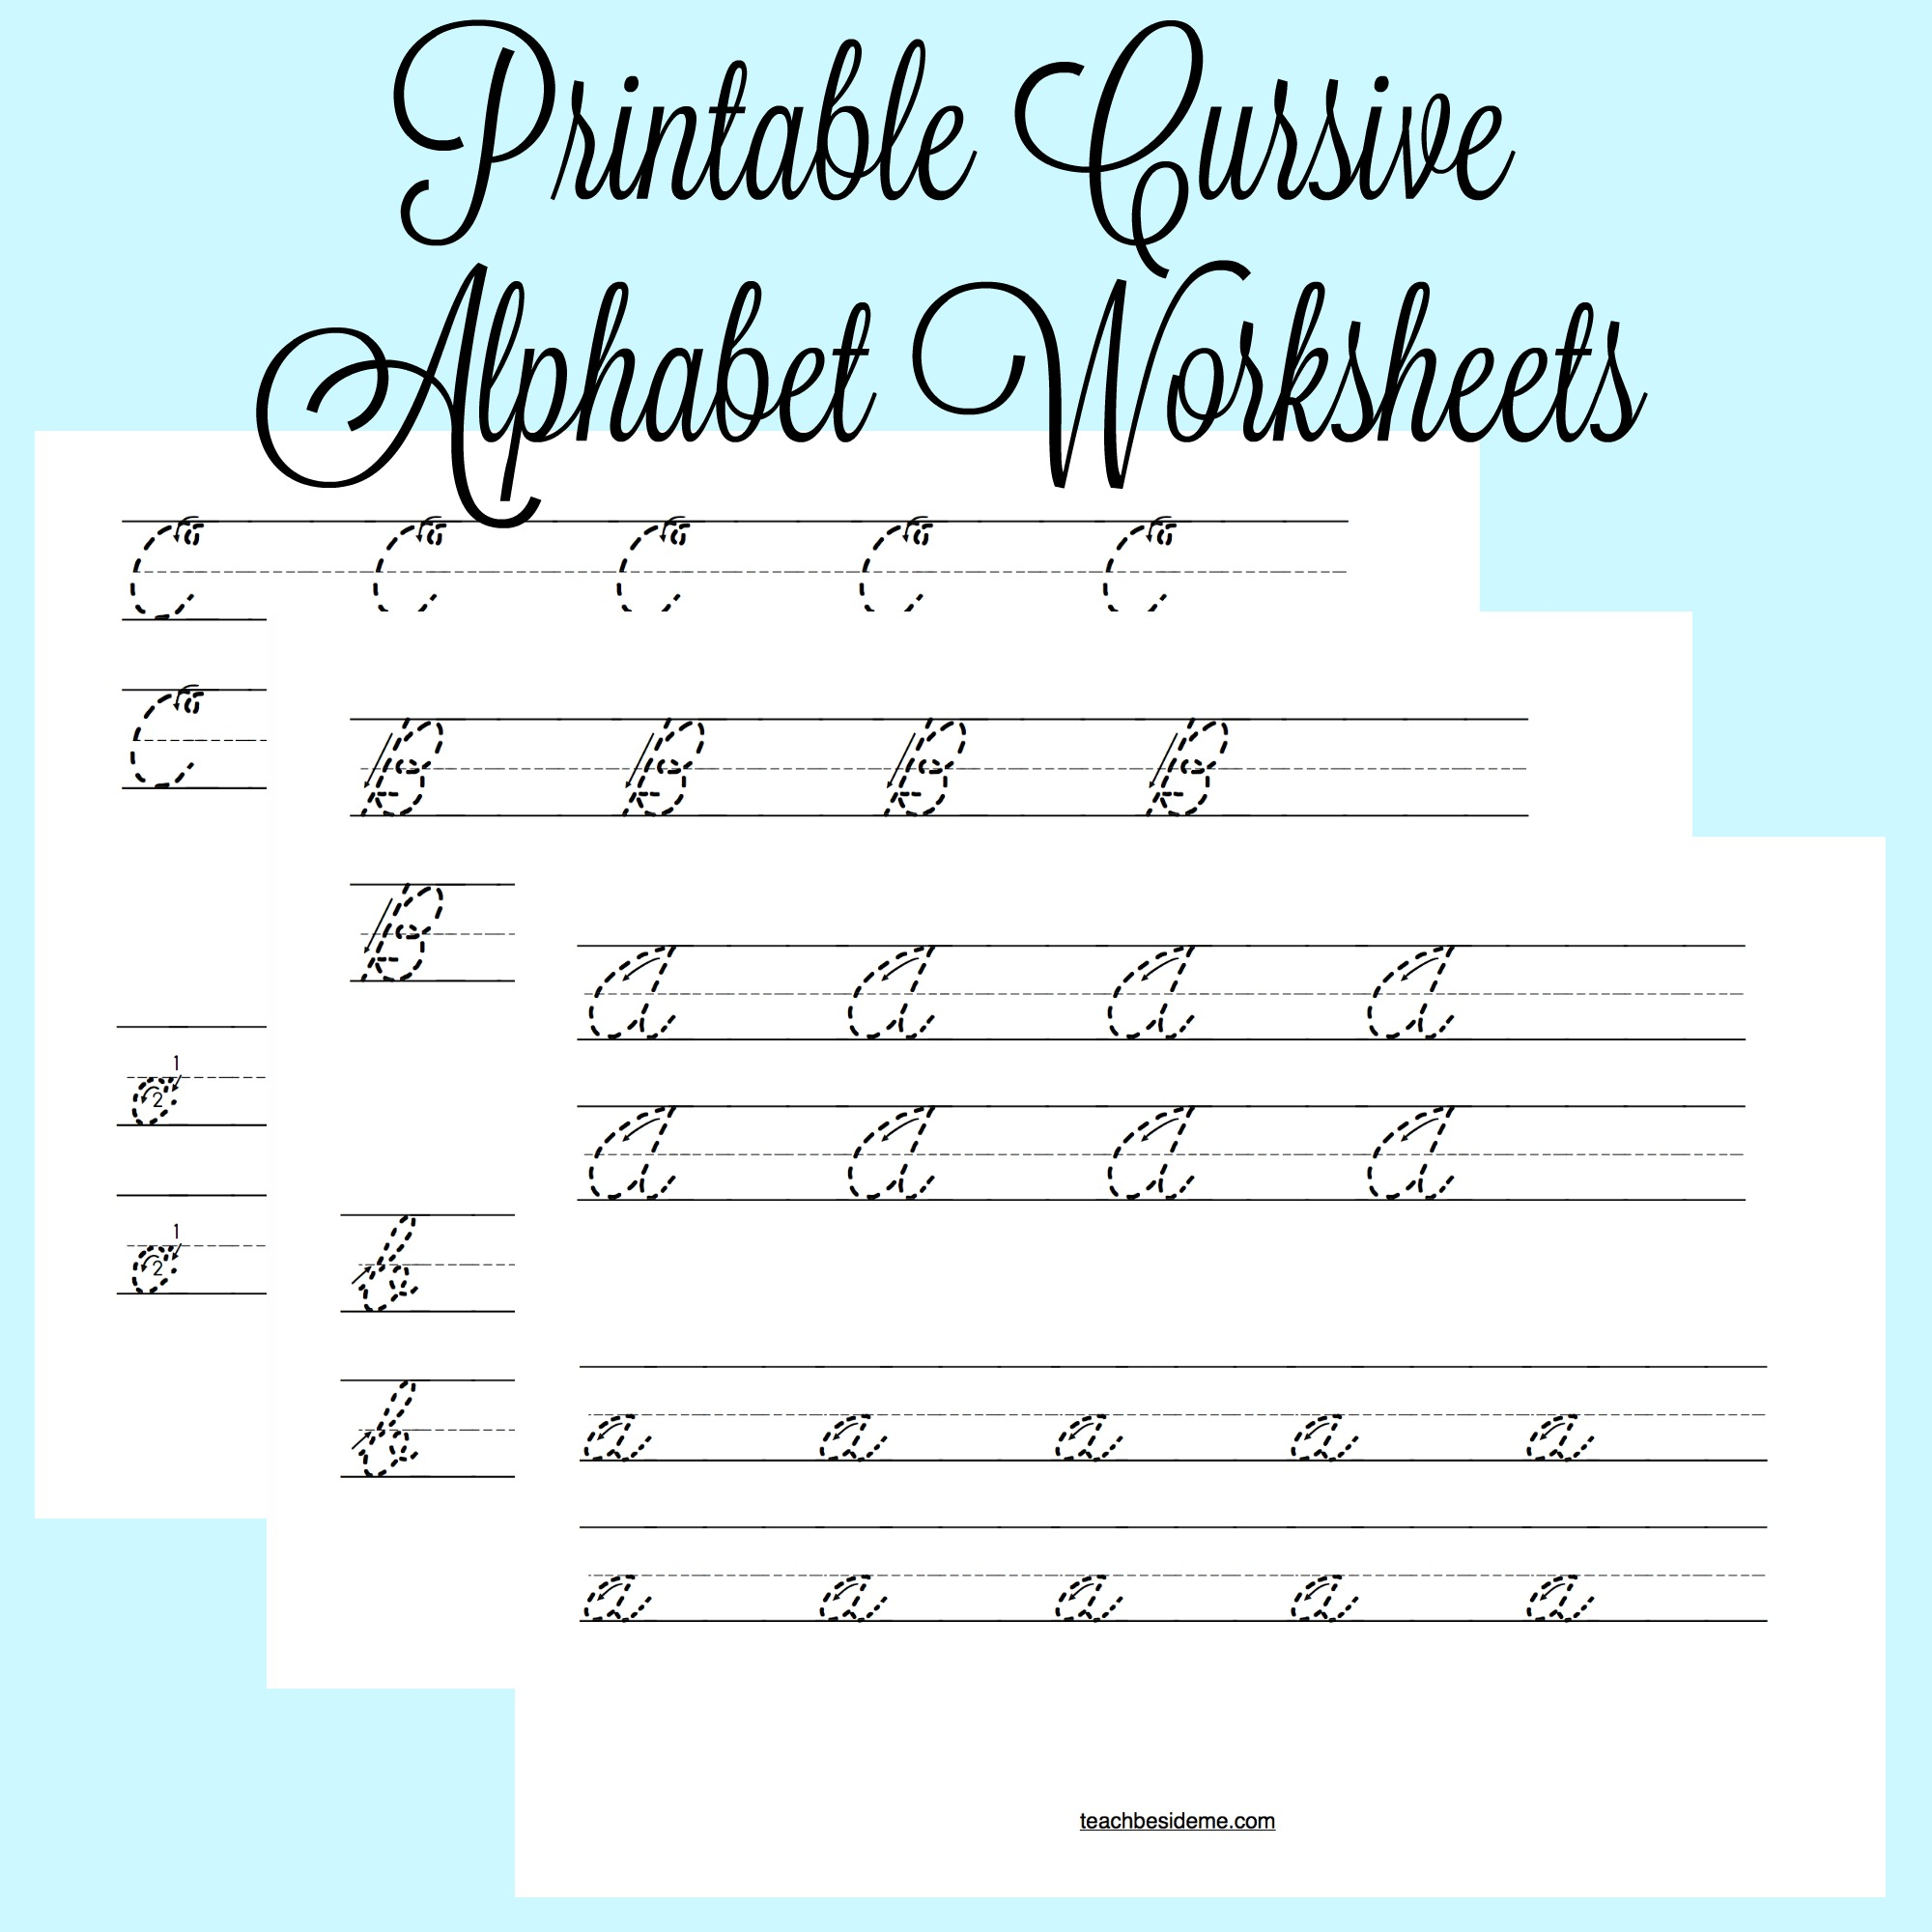 Worksheets Learn Cursive Worksheets cursive alphabet worksheets teach beside me